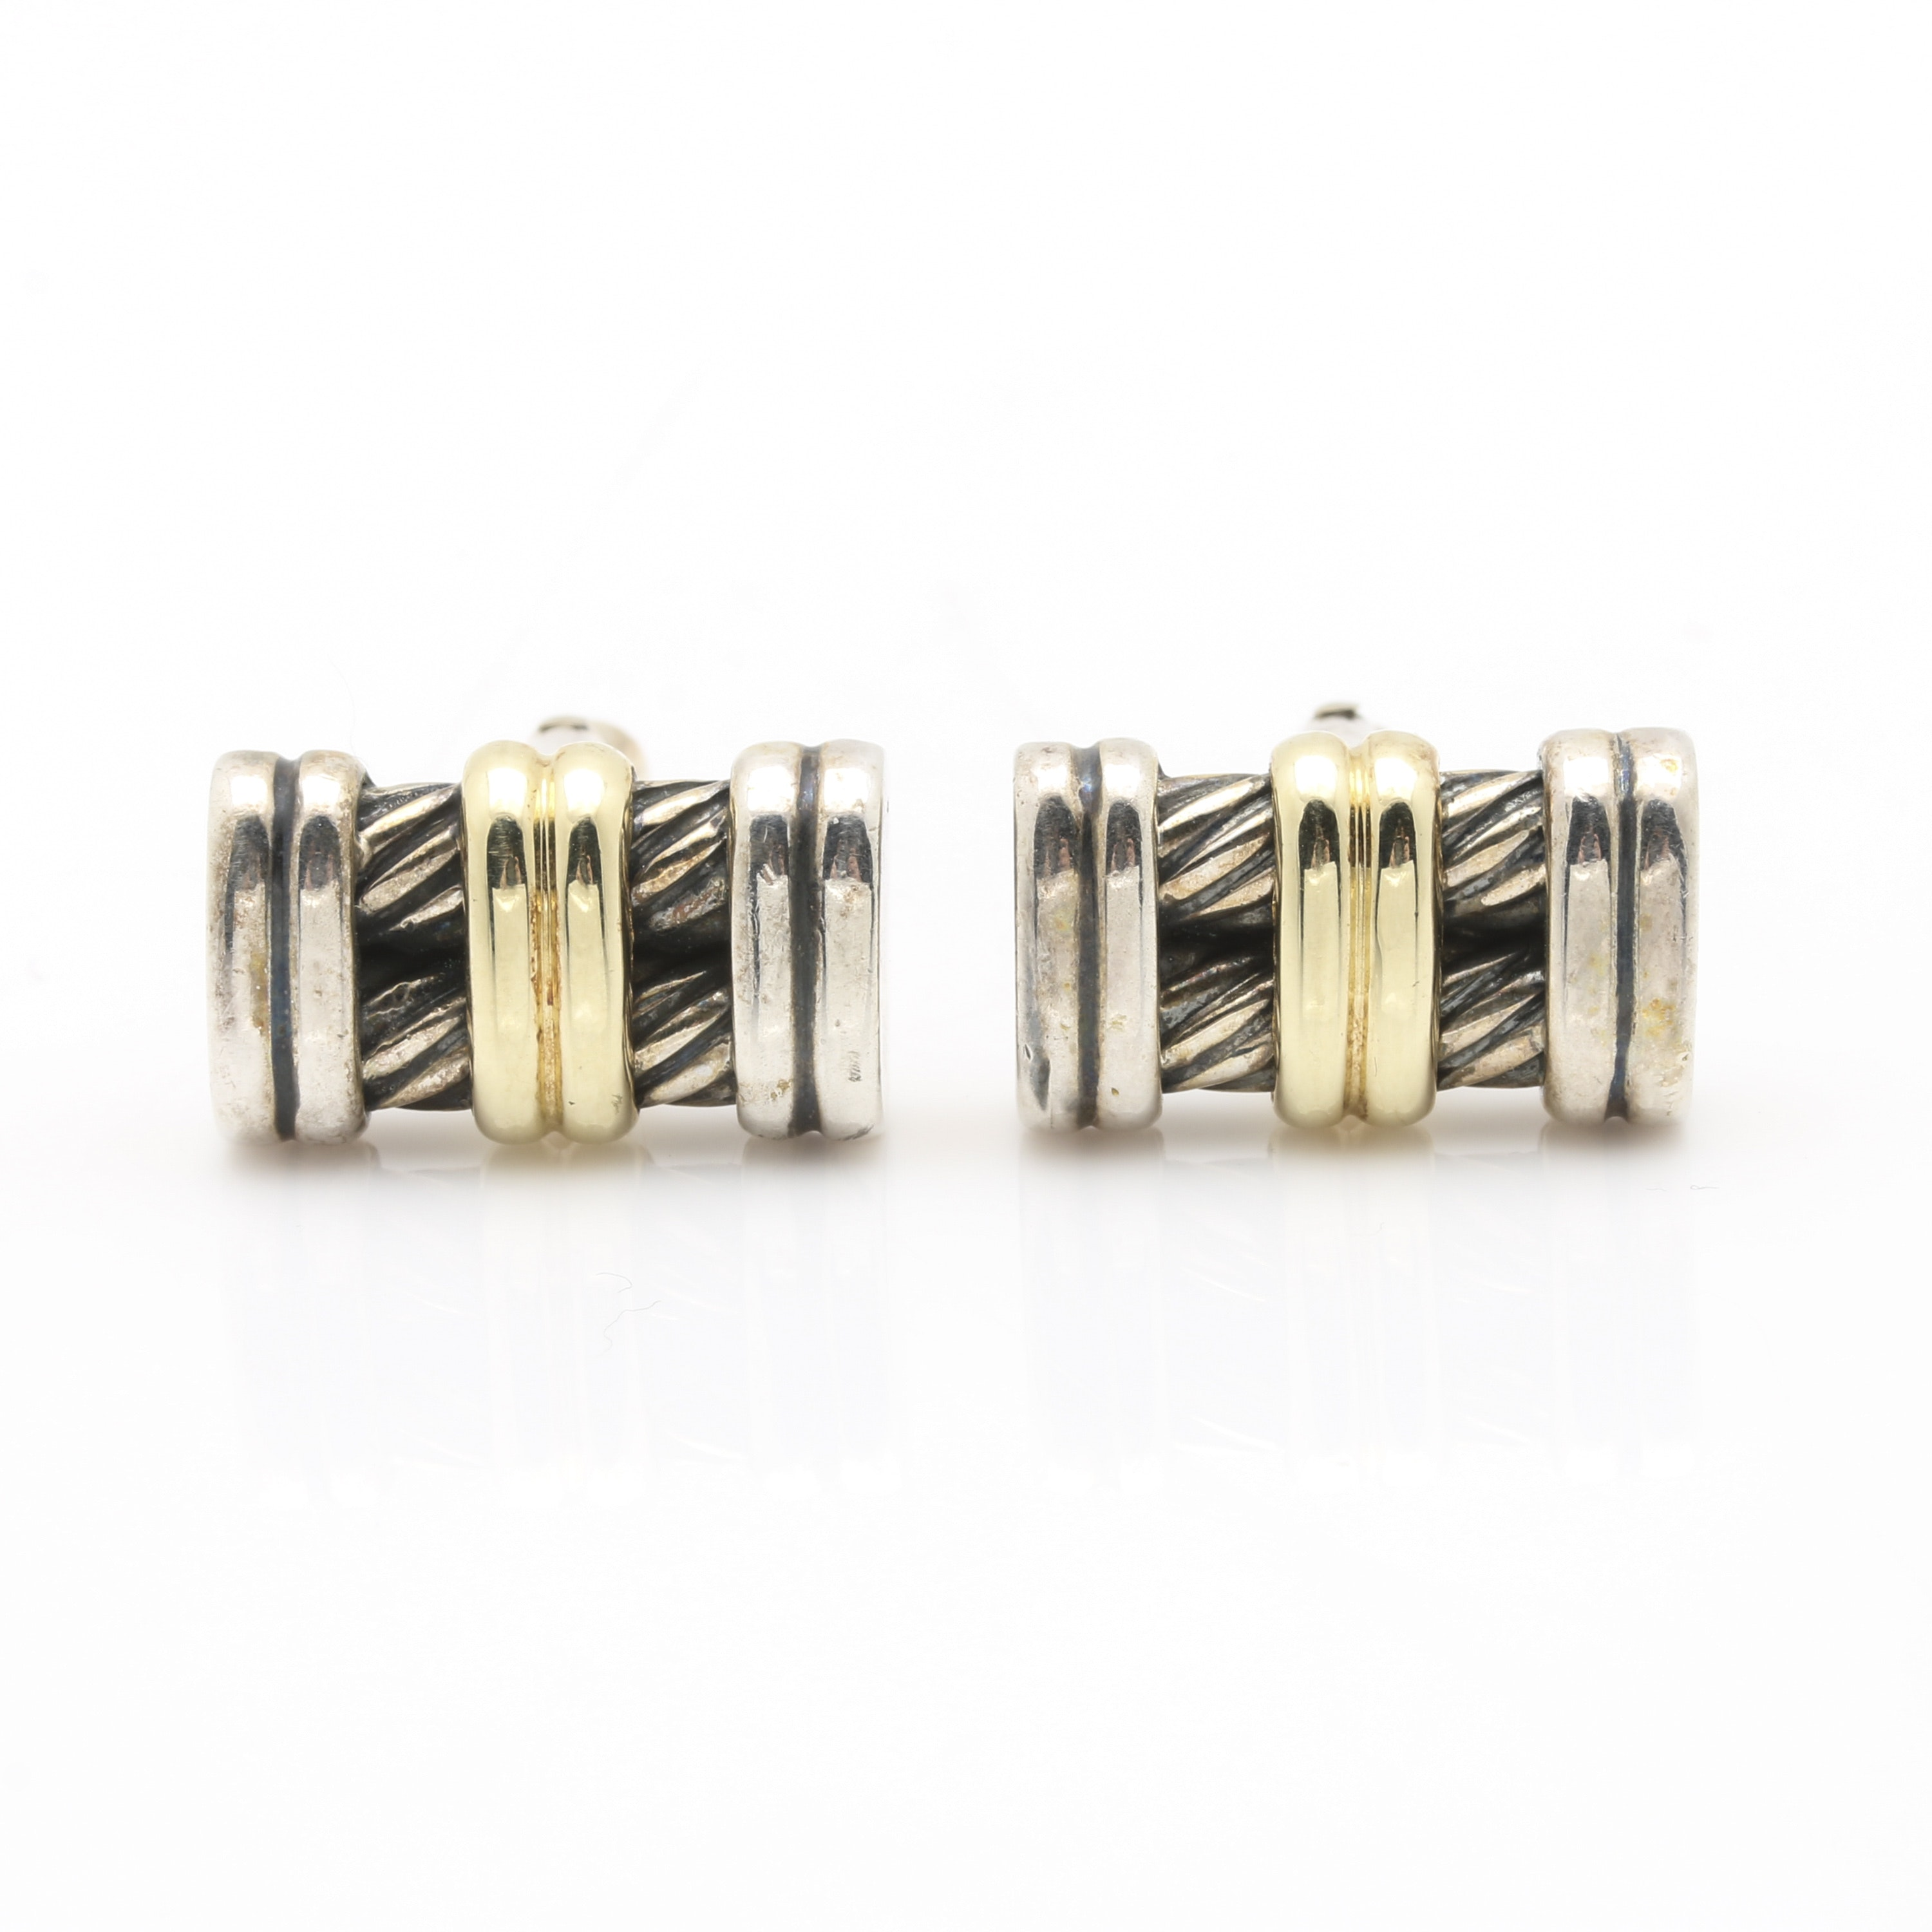 David Yurman Sterling Silver Cufflinks With 14K Yellow Gold Accents